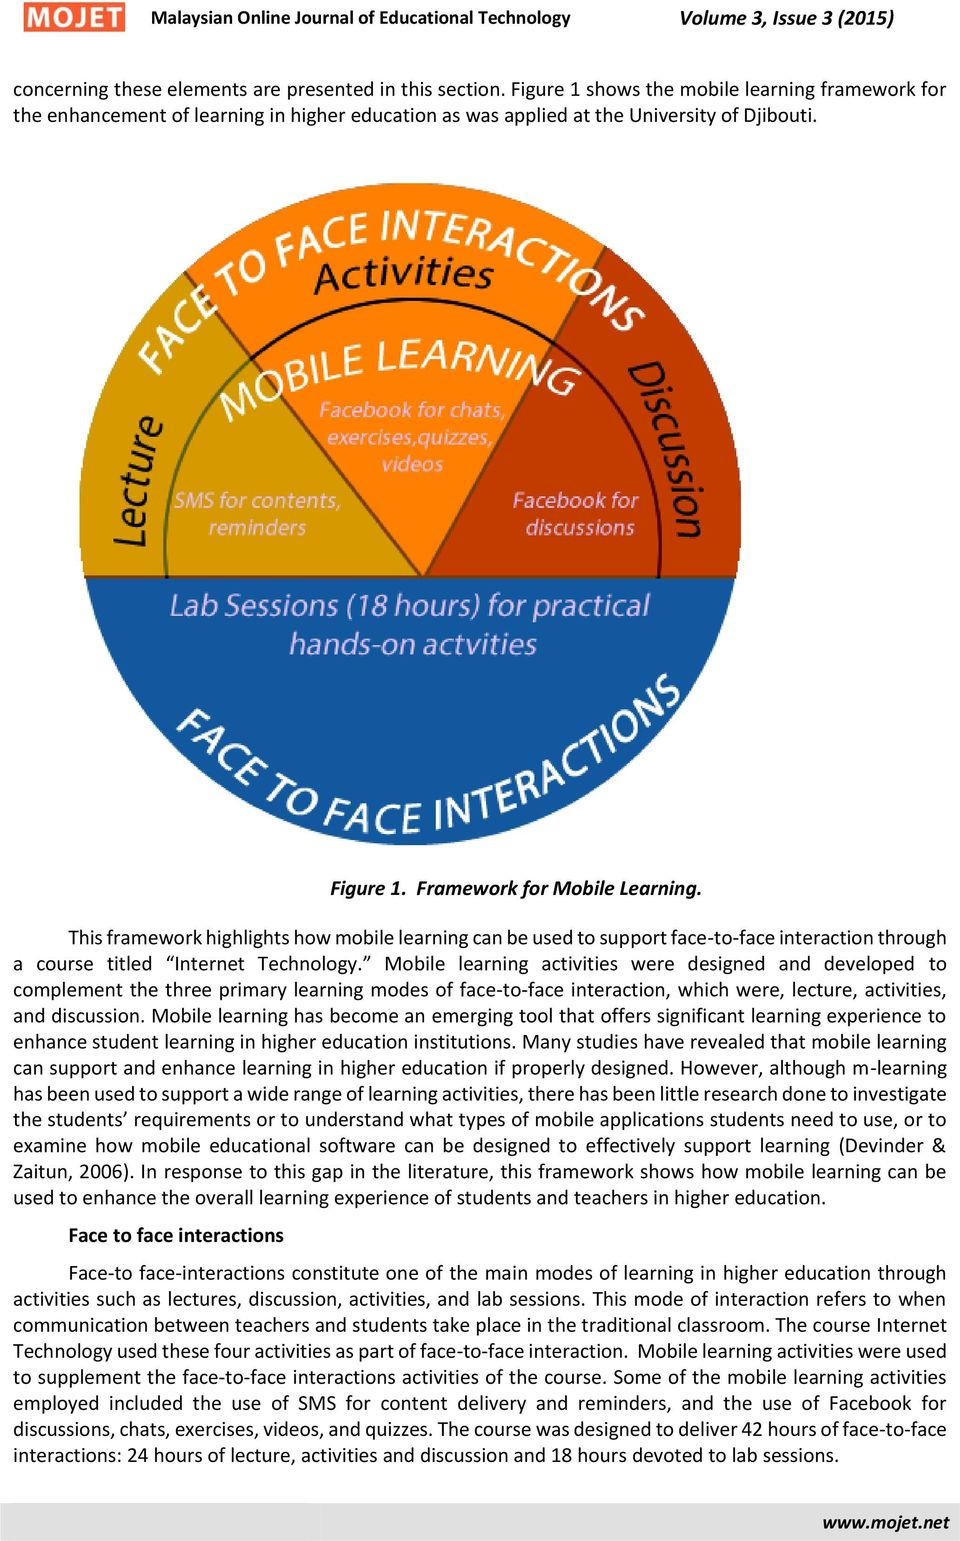 Mobile learning activities were designed and developed to complement the three primary learning modes of face-to-face interaction, which were, lecture, activities, and discussion.